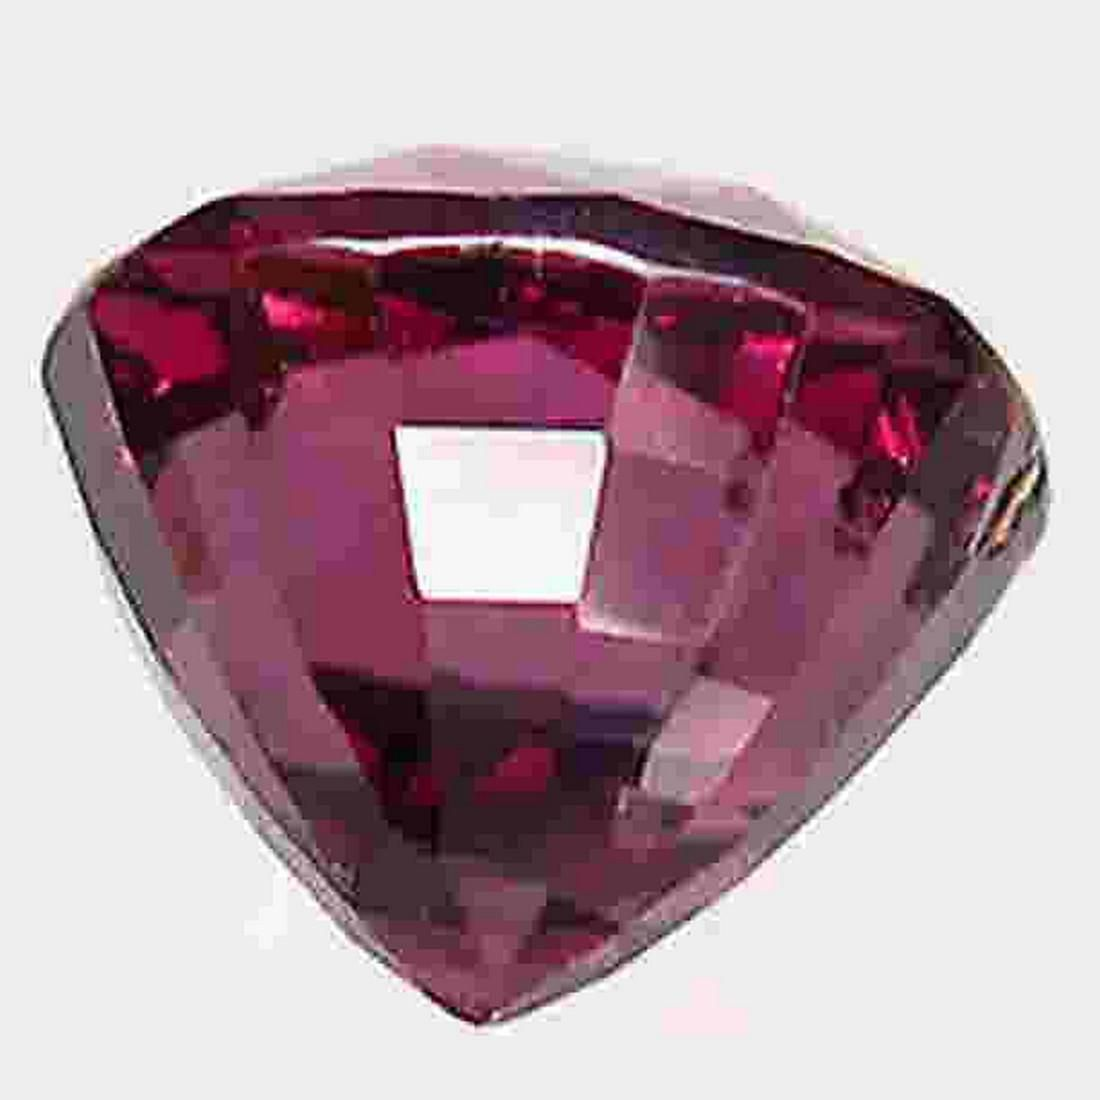 2,64 ct Natural Top Pink Spinel 2,64 ct